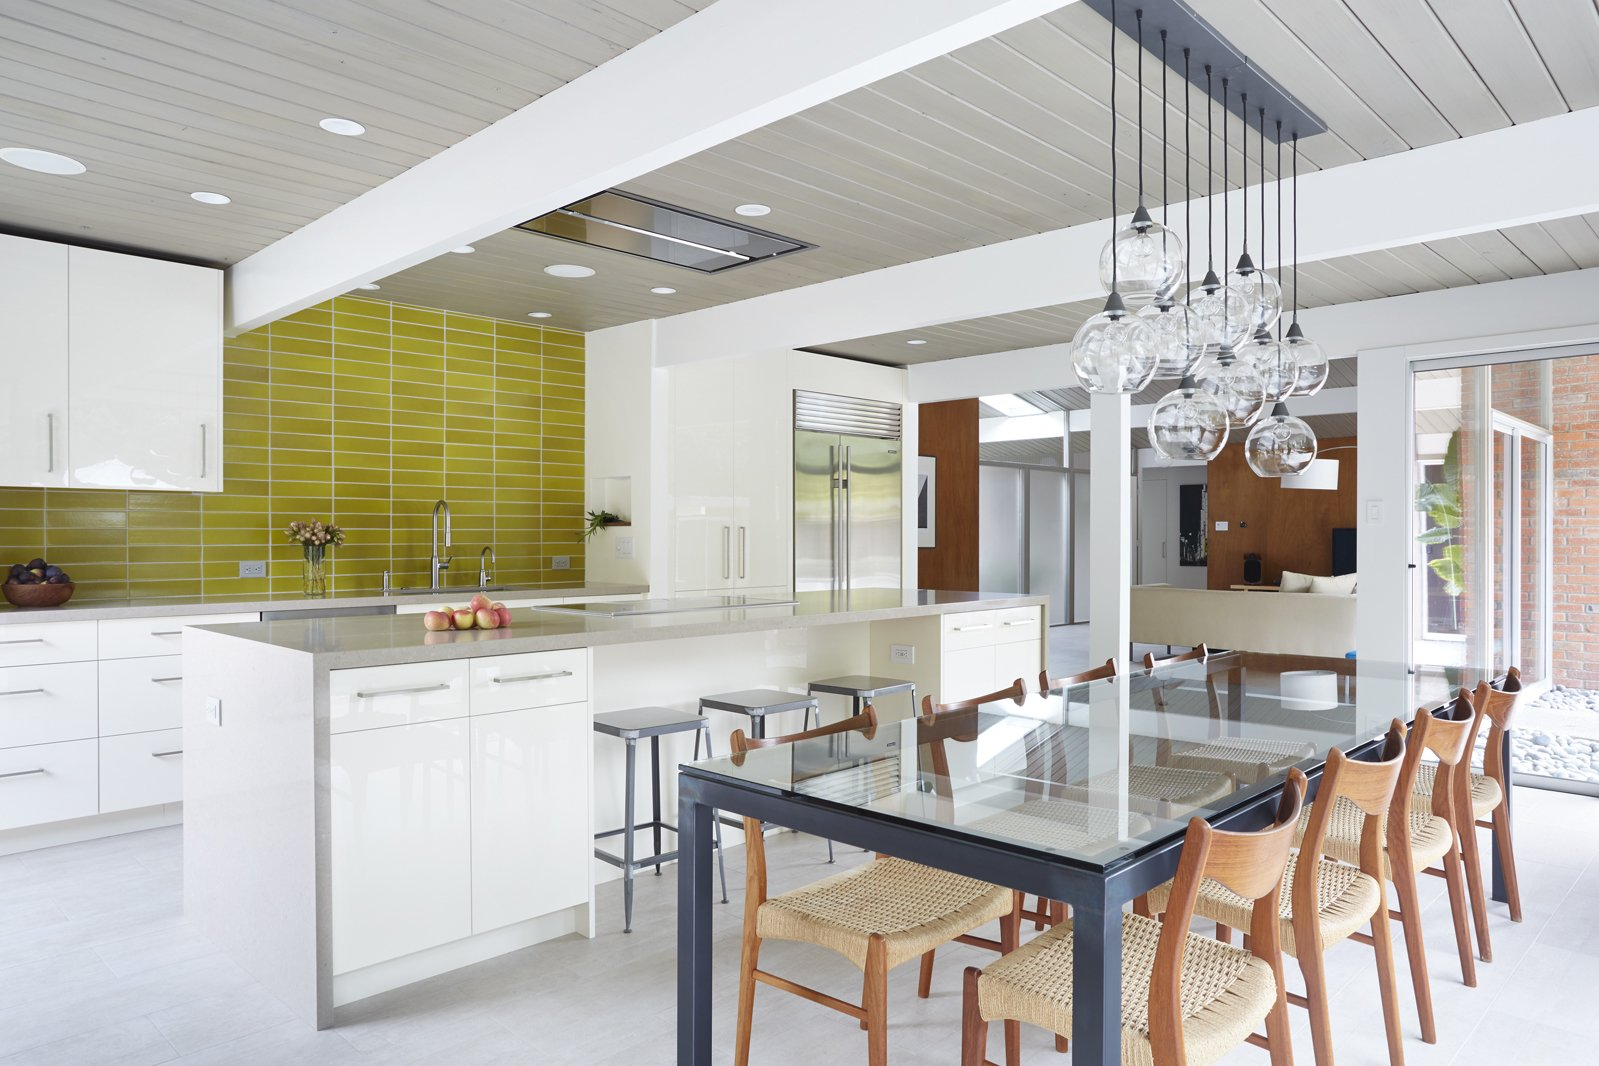 Renovated Eichler Kitchen and Dining Space Tagged: Kitchen, Engineered Quartz Counter, White Cabinet, Ceramic Tile Backsplashe, Pendant Lighting, and Refrigerator.  Photo 6 of 12 in How the Colors in Your Kitchen Affect Your Appetite from Northern California Eichler